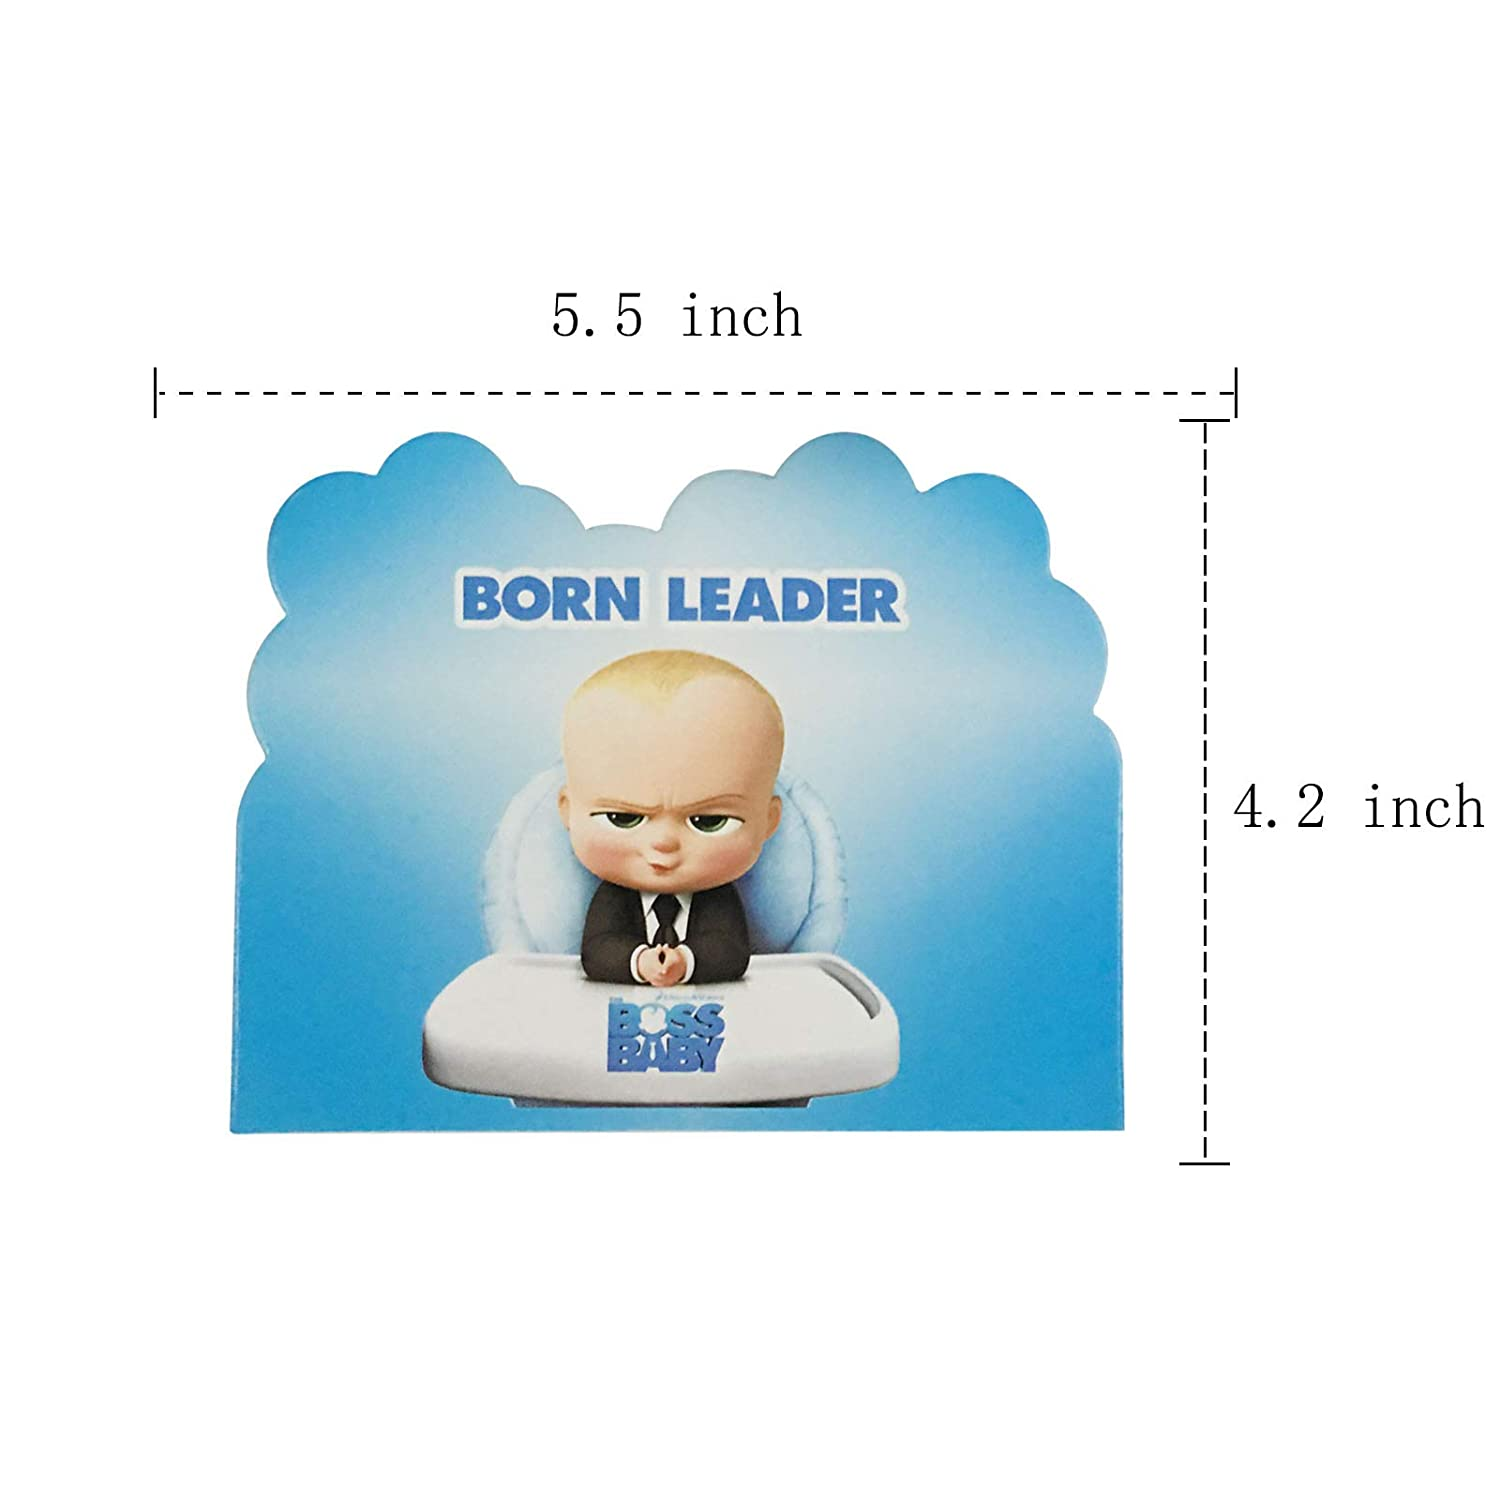 20pcs Boss Baby Birthday Party Invitations For Kids Baby Shower Party Supplies